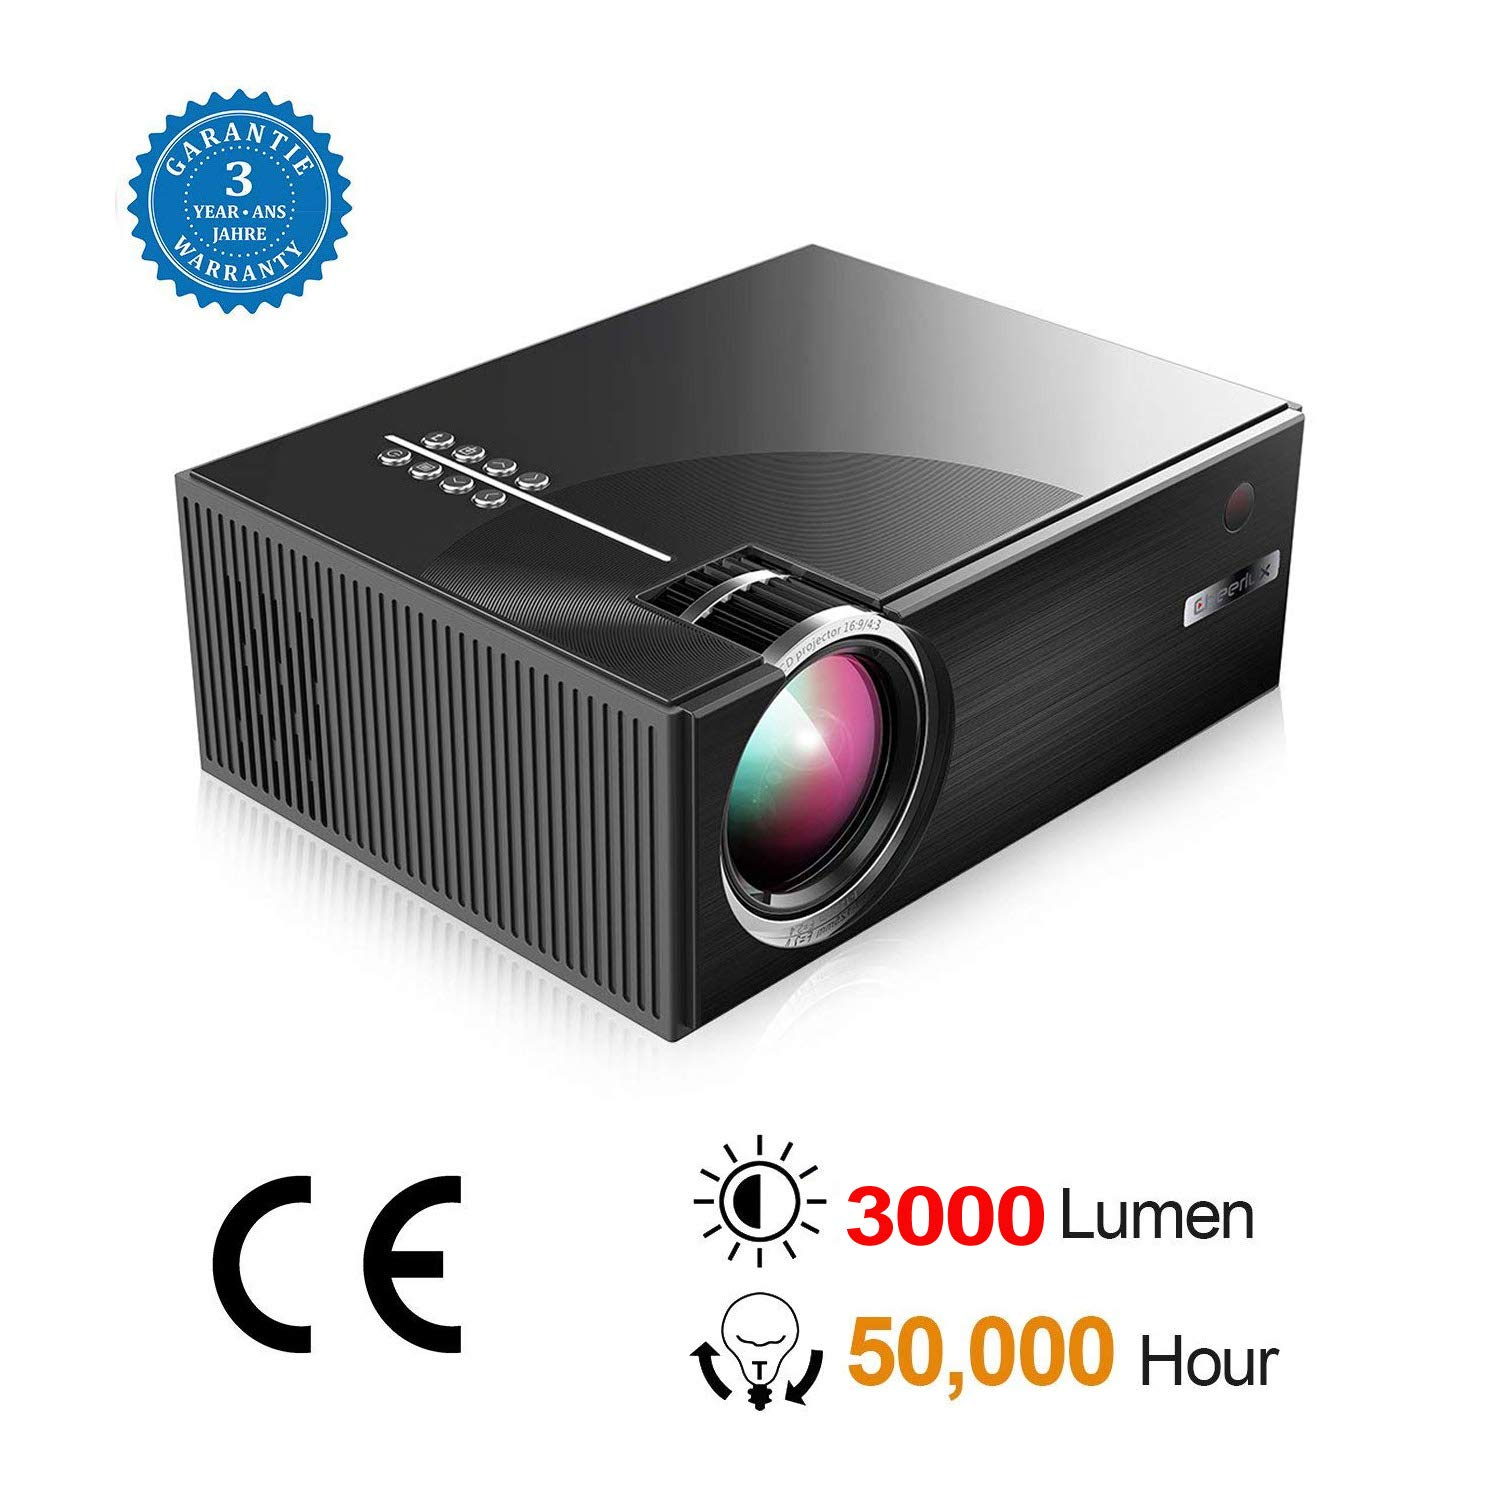 BEYI 3000 Lumen LCD LED Portable Home Theater Video Projectors, 2018 Updated Low-Noise Stereo Speakers, 50000+ Hours Support HD 1080P for Outdoor Movie Nights, Black